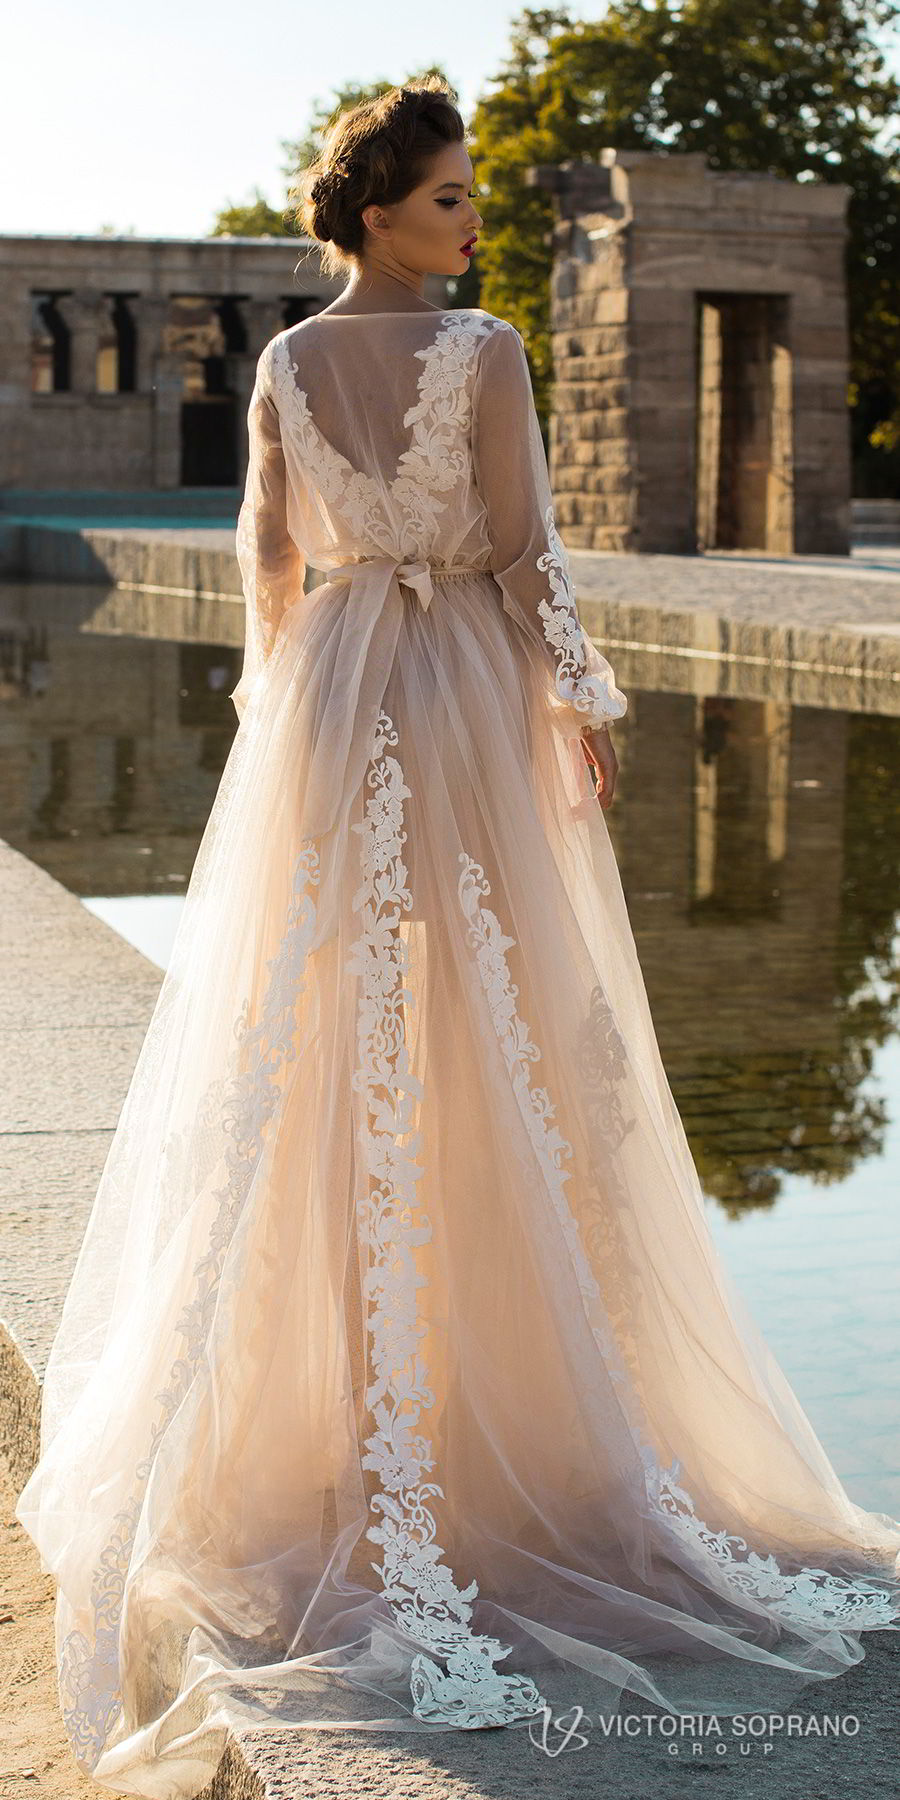 victoria soprano 2018 bridal long sleeves illuson bateau v neck light embellishment romantic blush color a line wedding dress sheer back sweep train (leila) bv